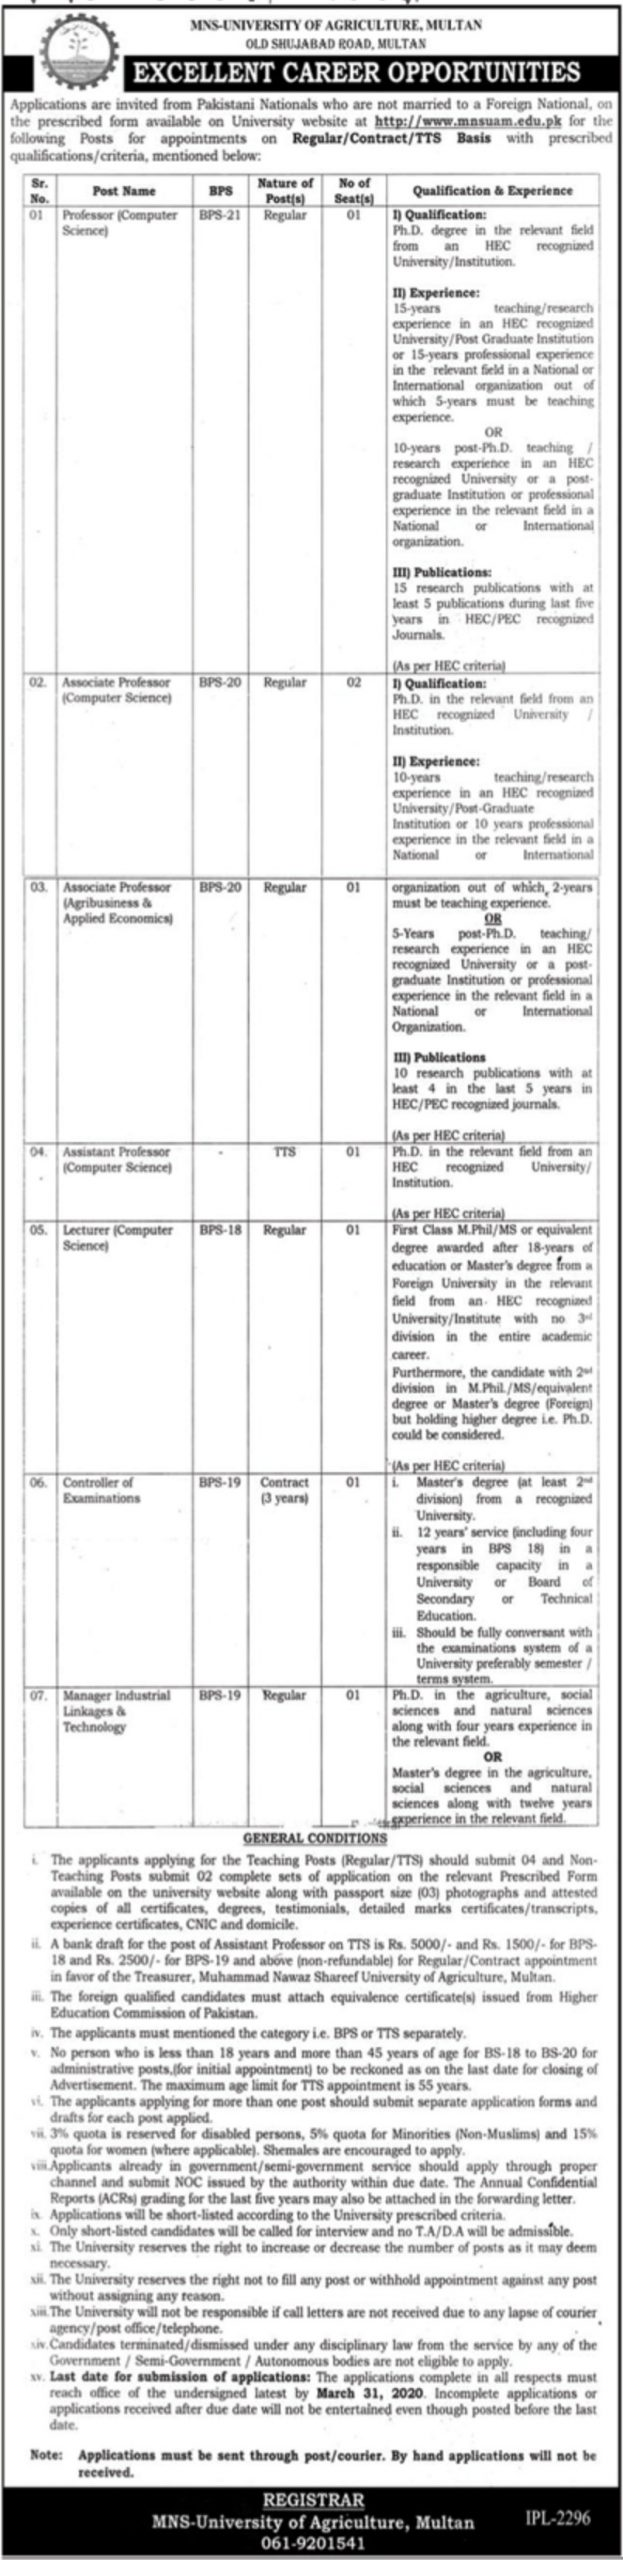 MNS University of Agriculture Multan Jobs 2020